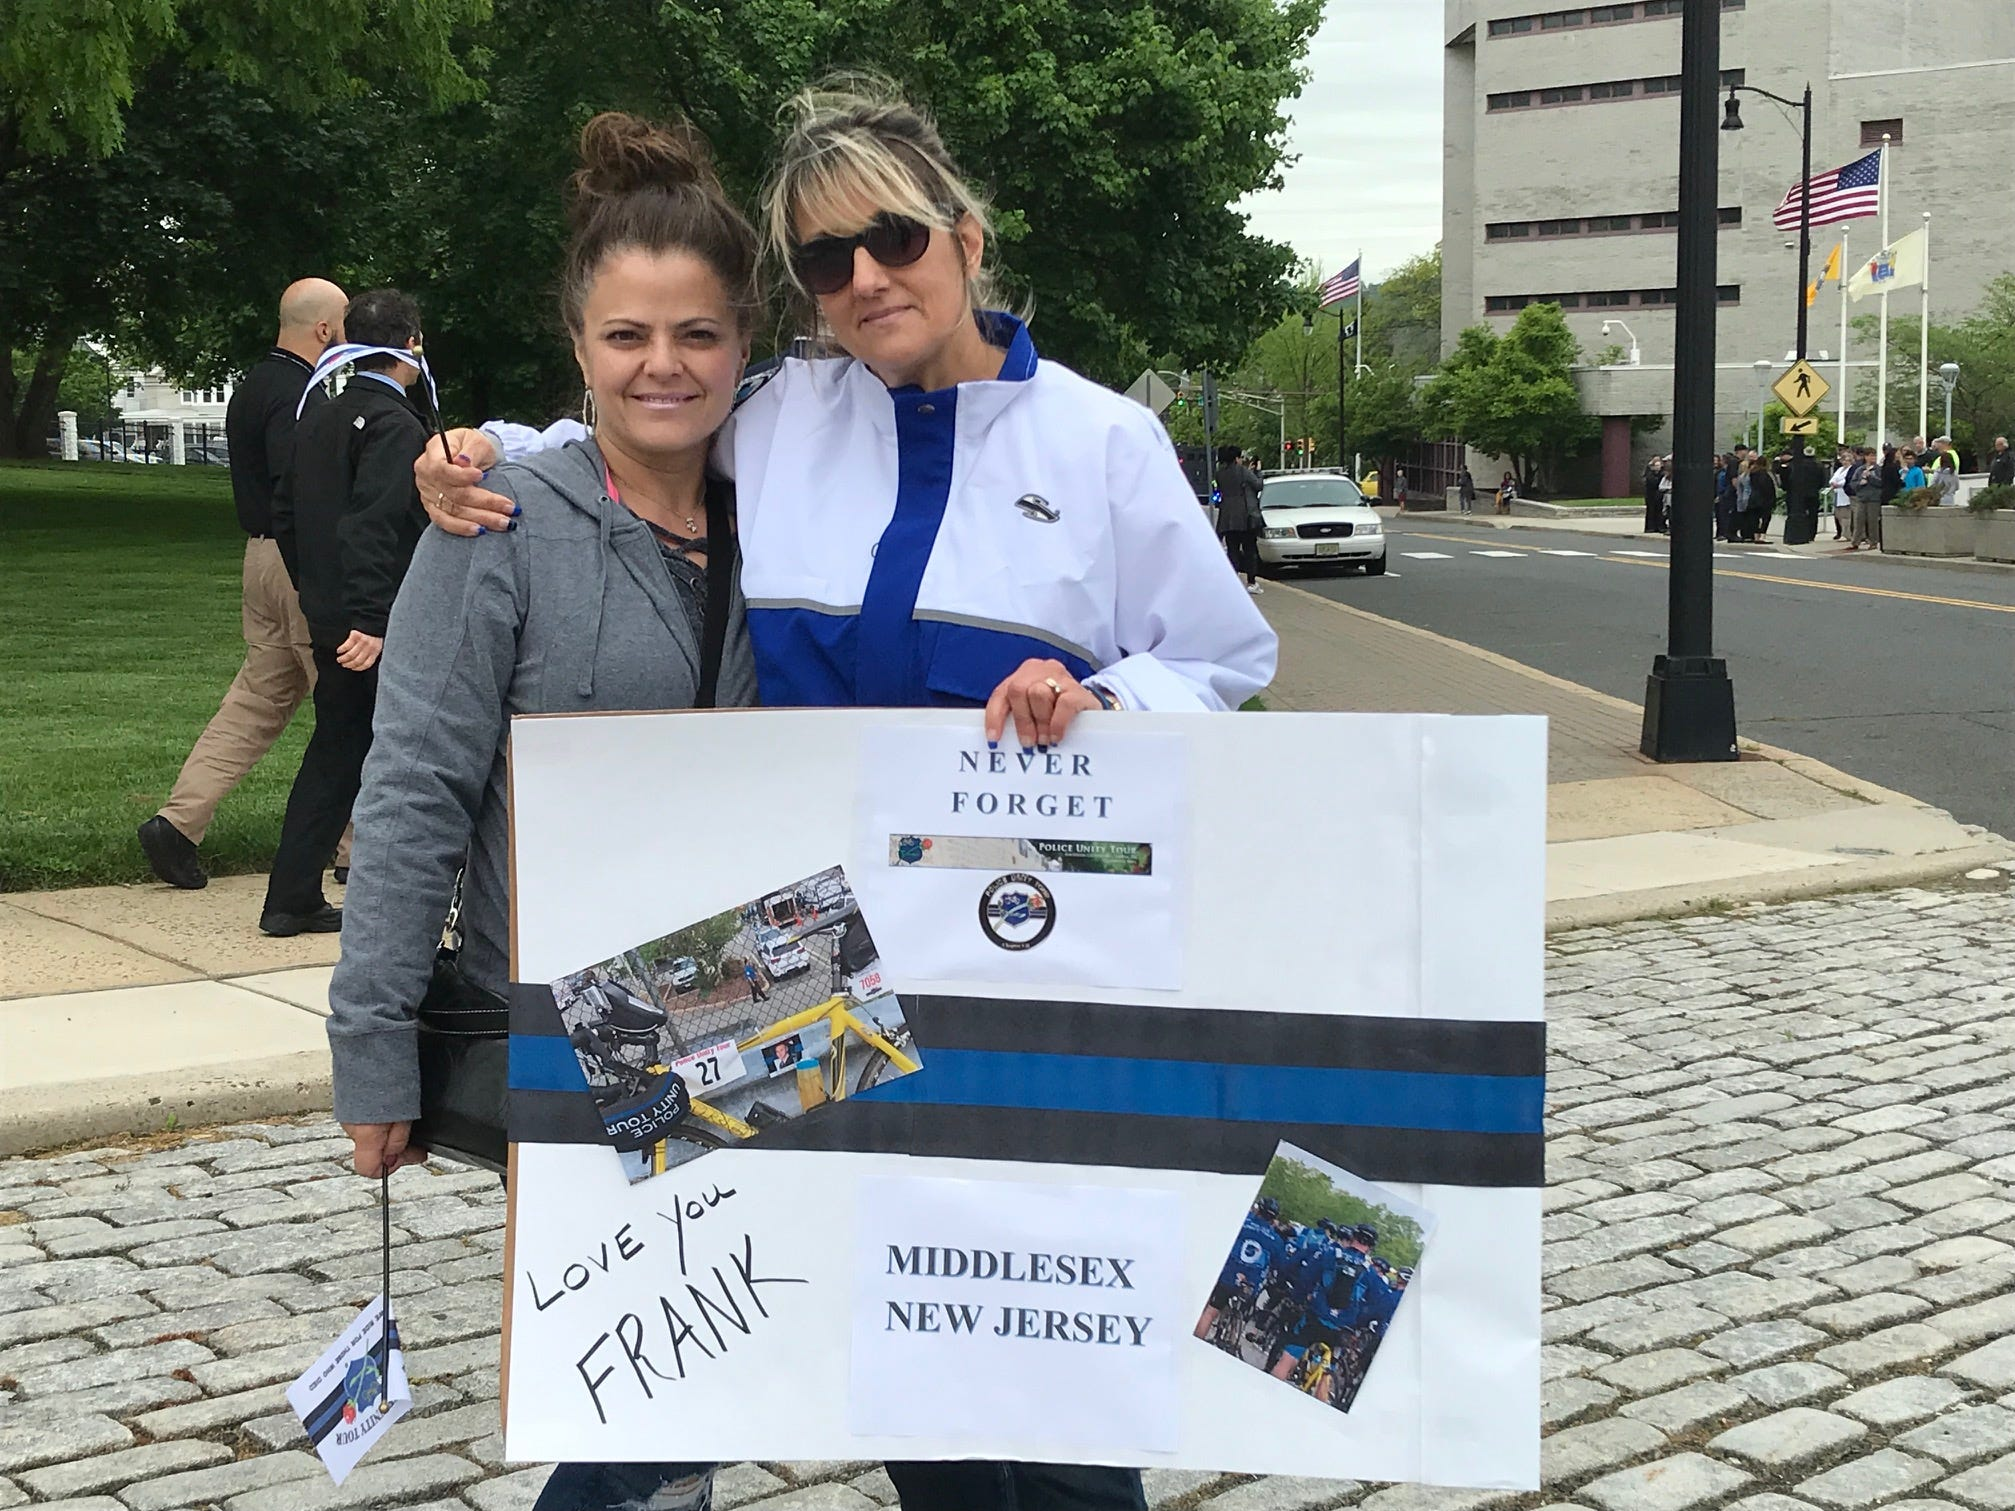 Yvonne Zazzara of Flemington and Jill DeNick, wife of Middlesex Borough Police Capt. Frank DeNick came out to cheer him on as the Police Unity Tour traveled through Somerville on Thursday.